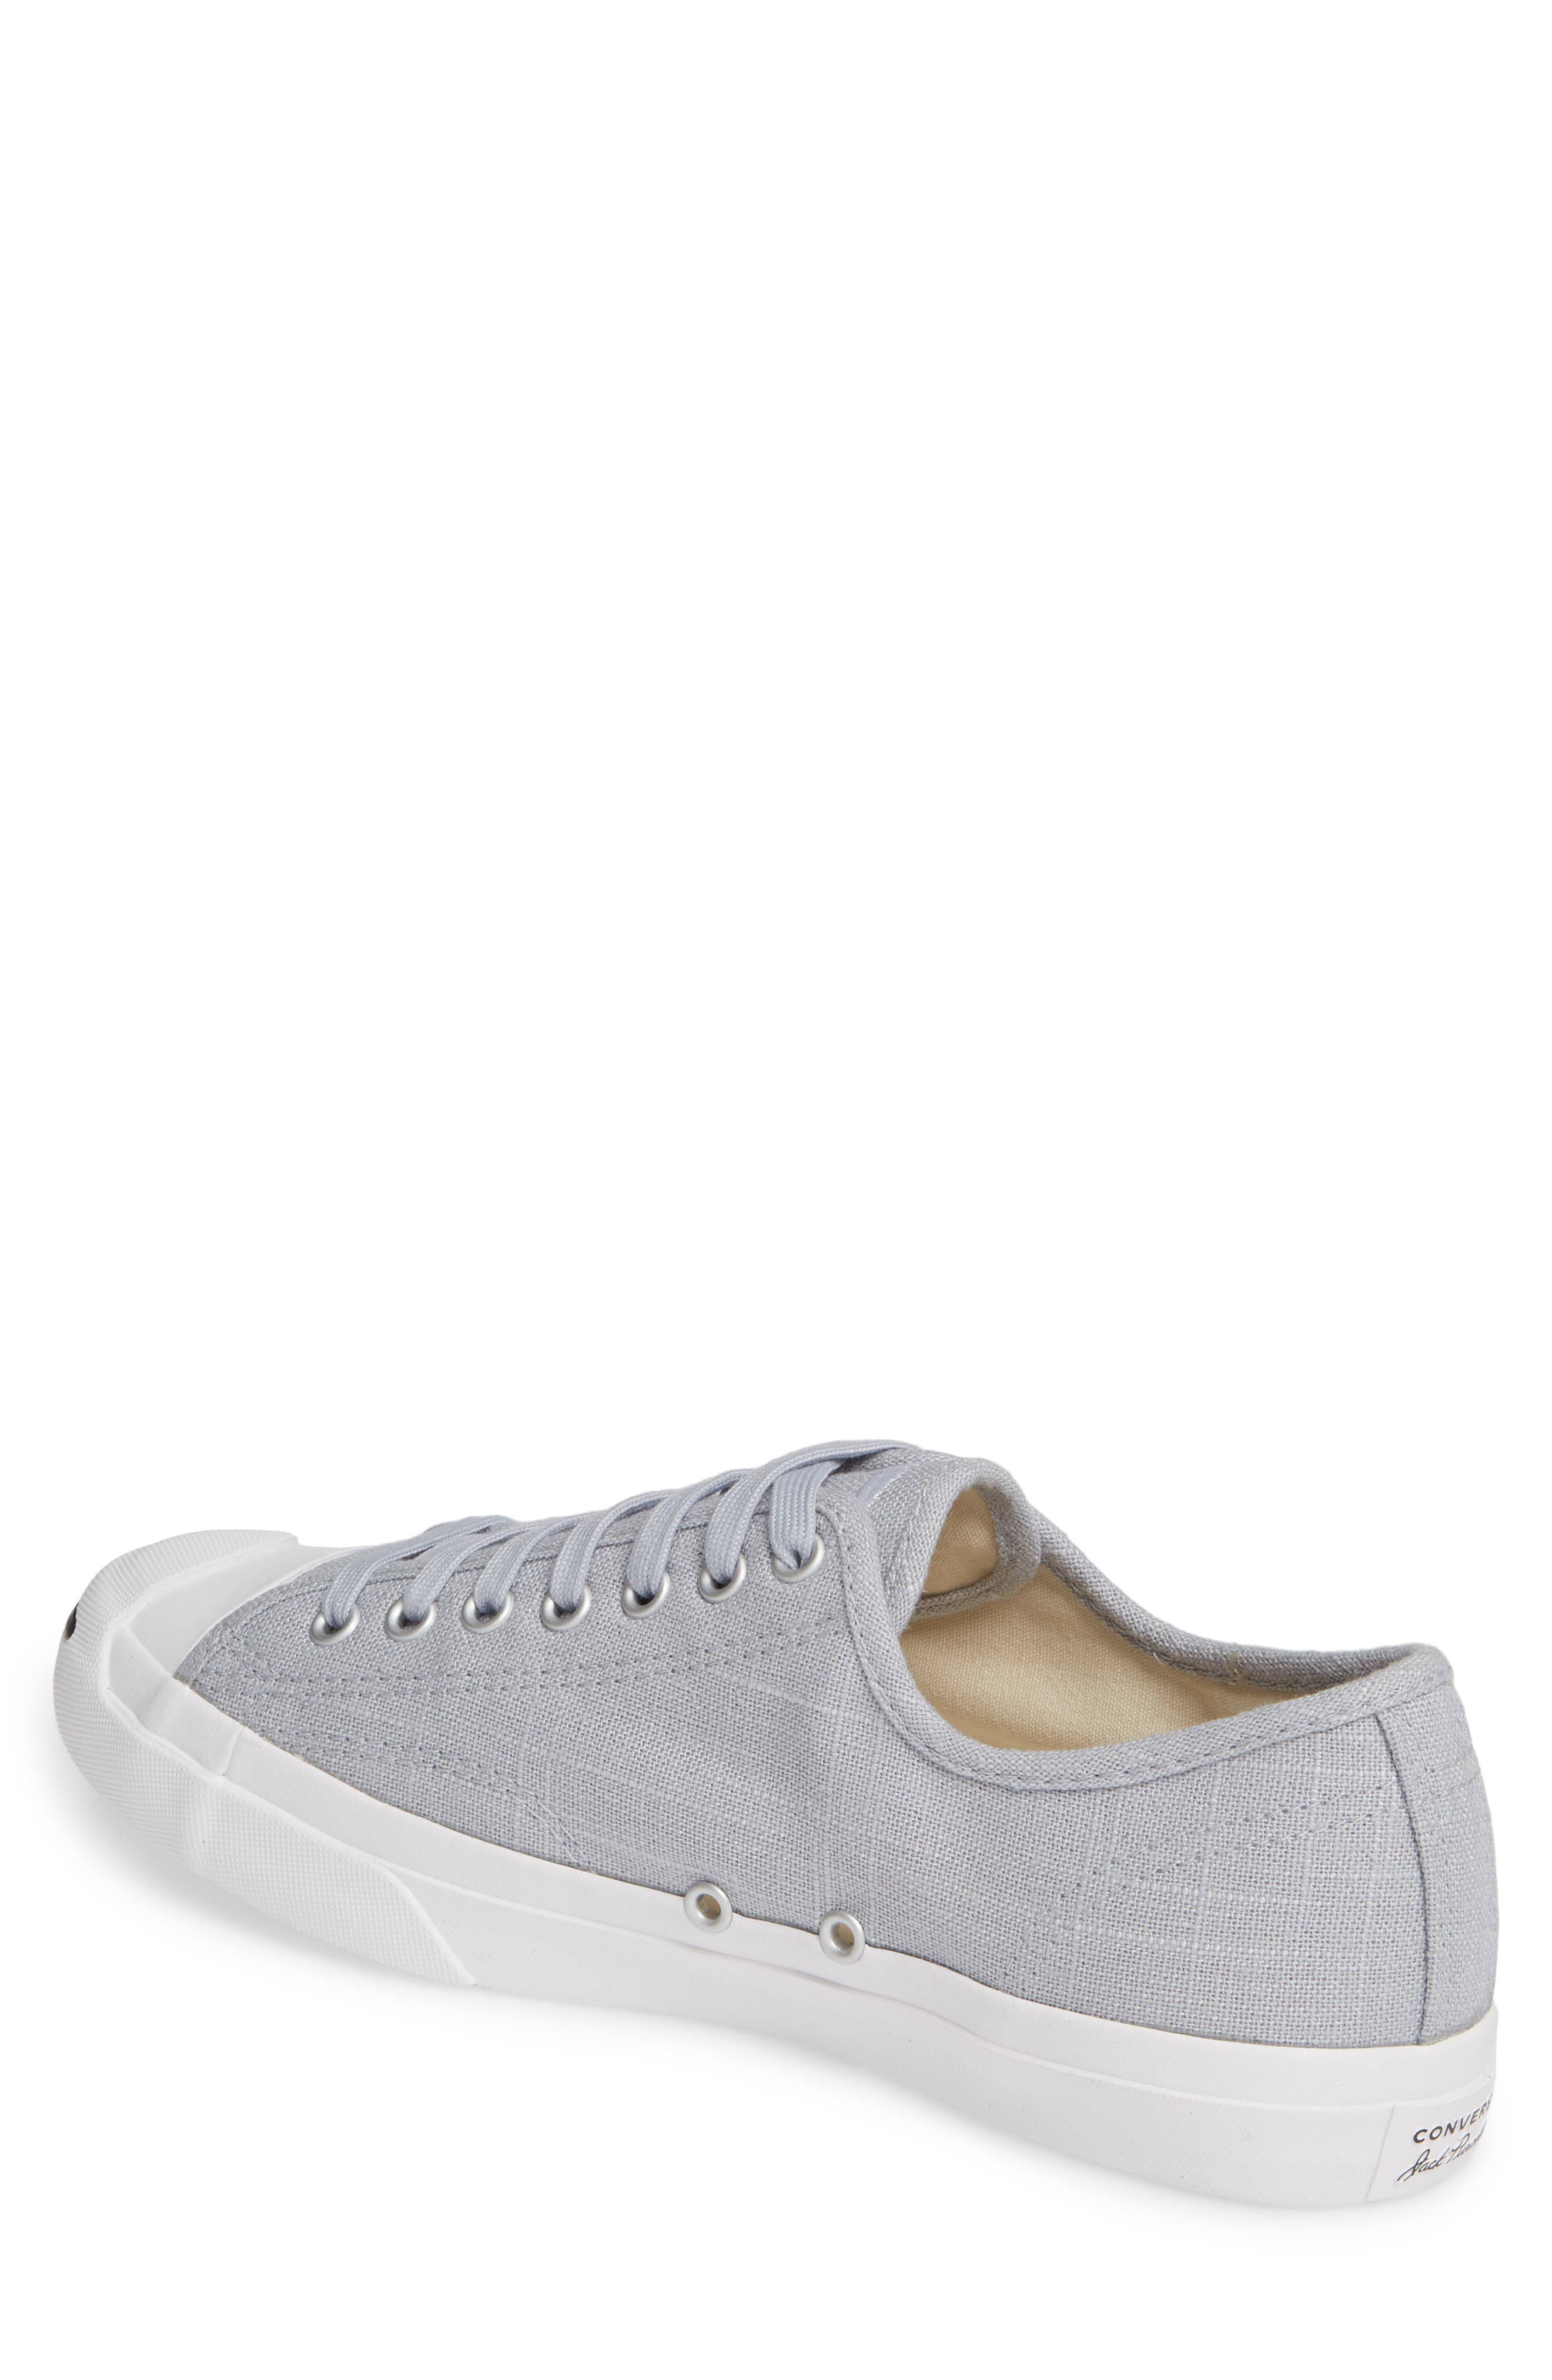 985640bf106d Converse Jack Purcell